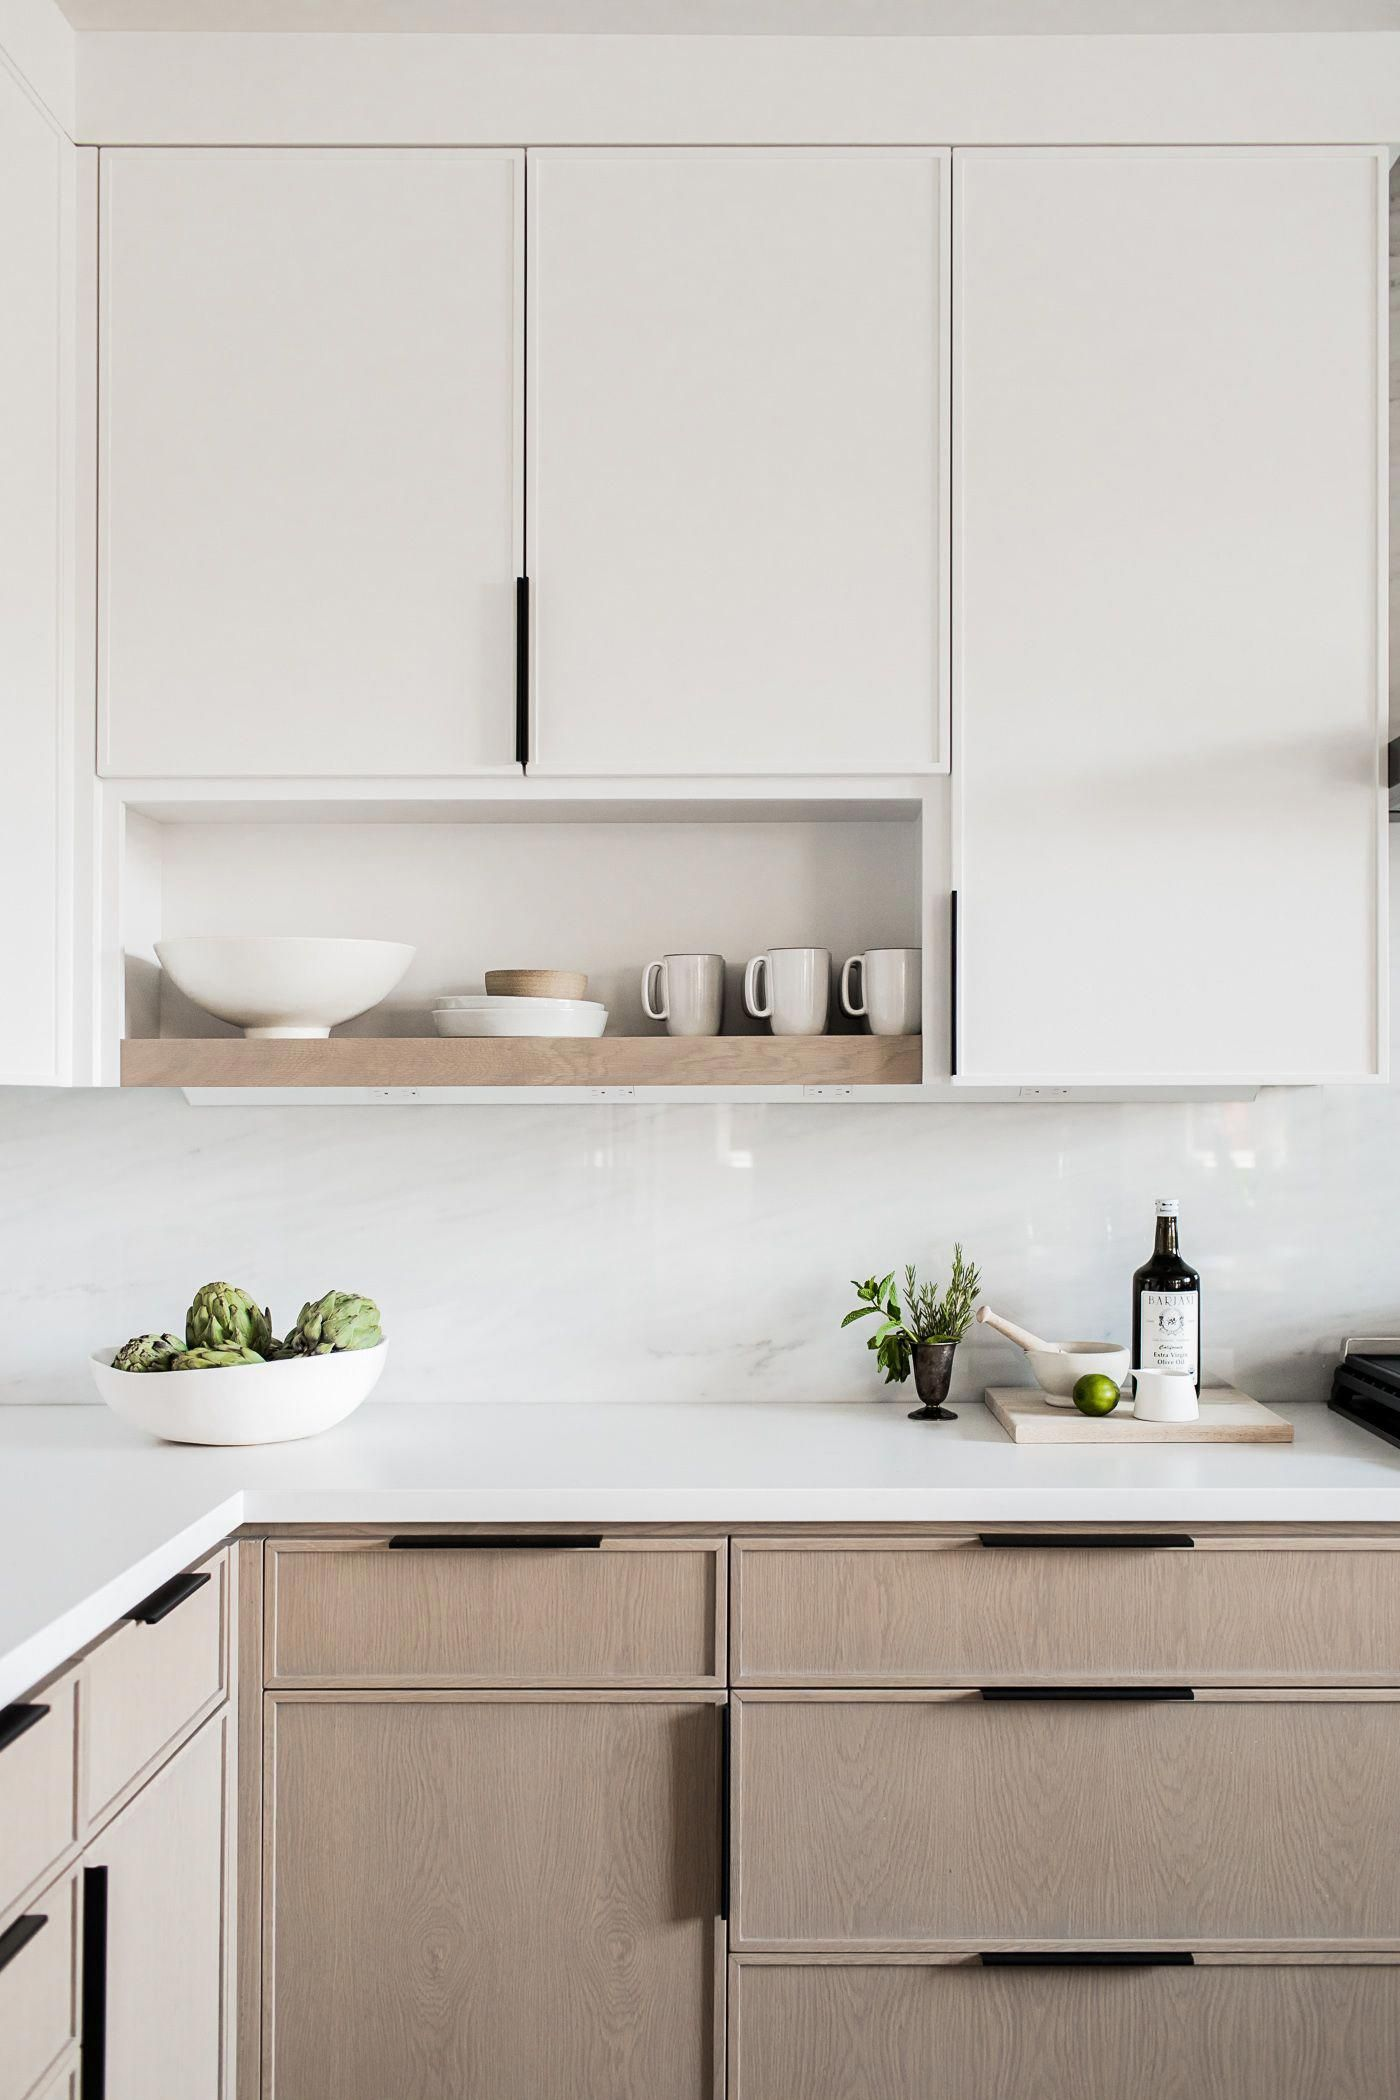 A New Take on All-Wood Kitchens - Studio McGee